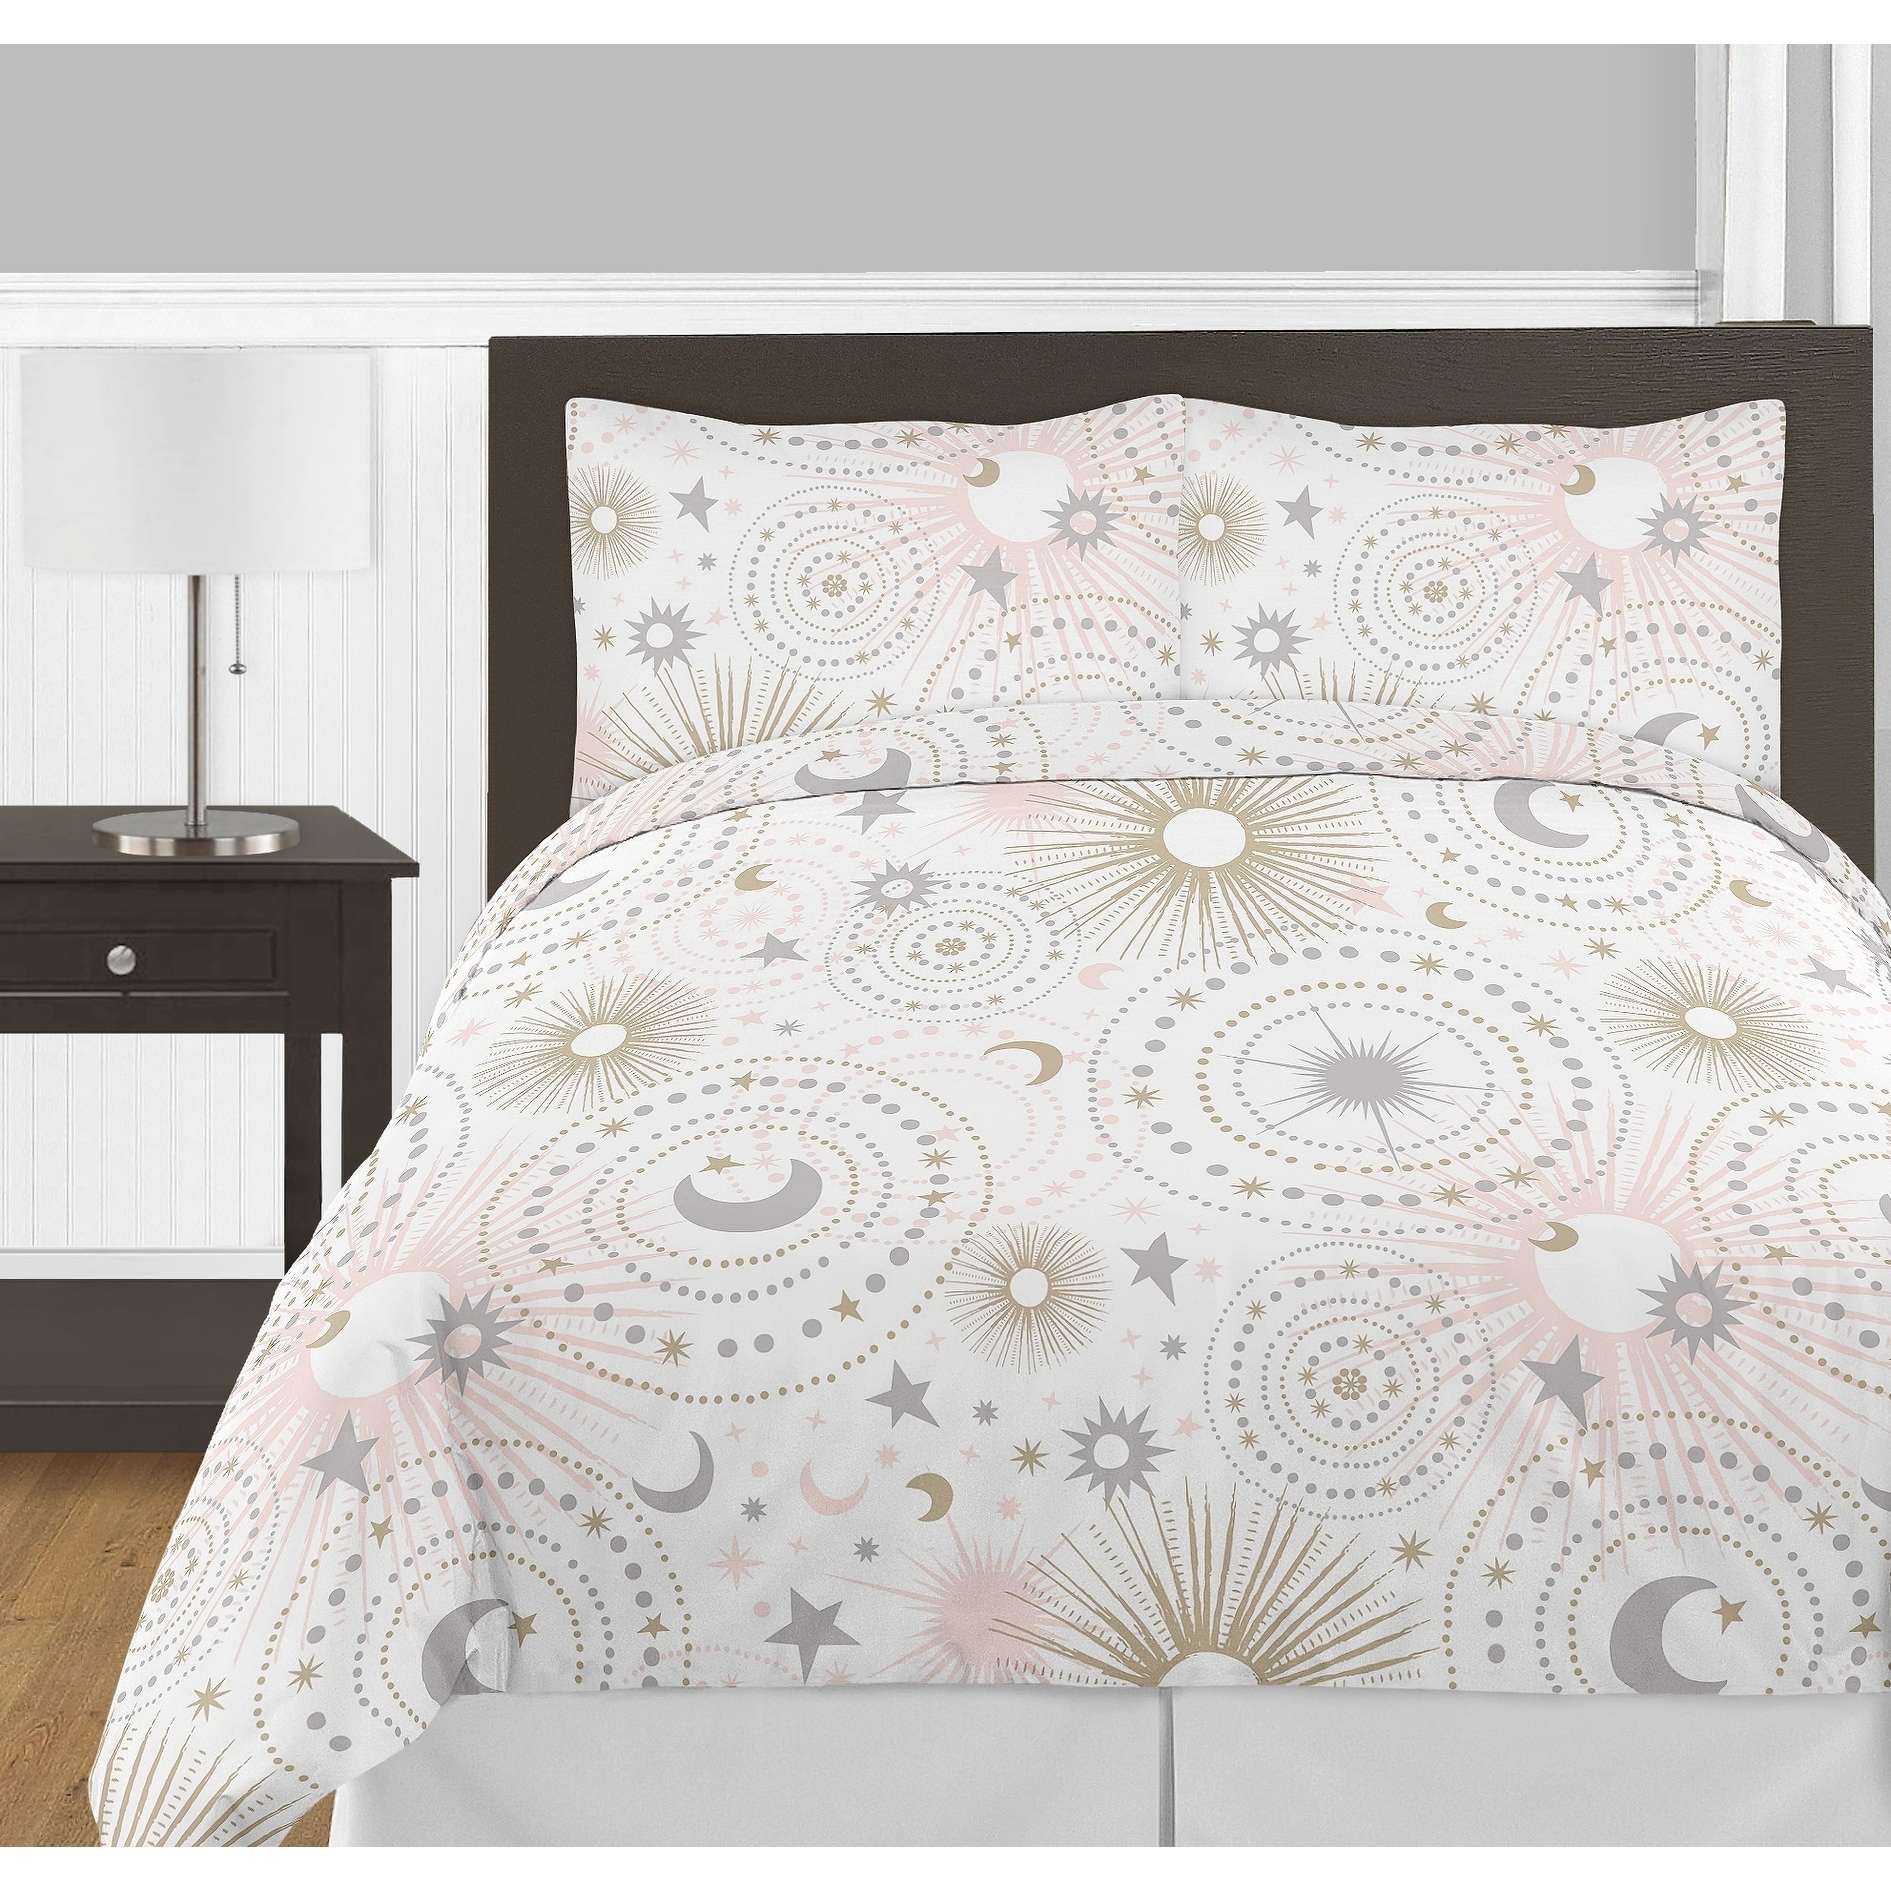 and howling wells grey with blue white foiled in horrifying ideas navy wi bohemian phenomenal as zq cover celestial bedding duvet comforter genial bedroom pink green for bloomingdale